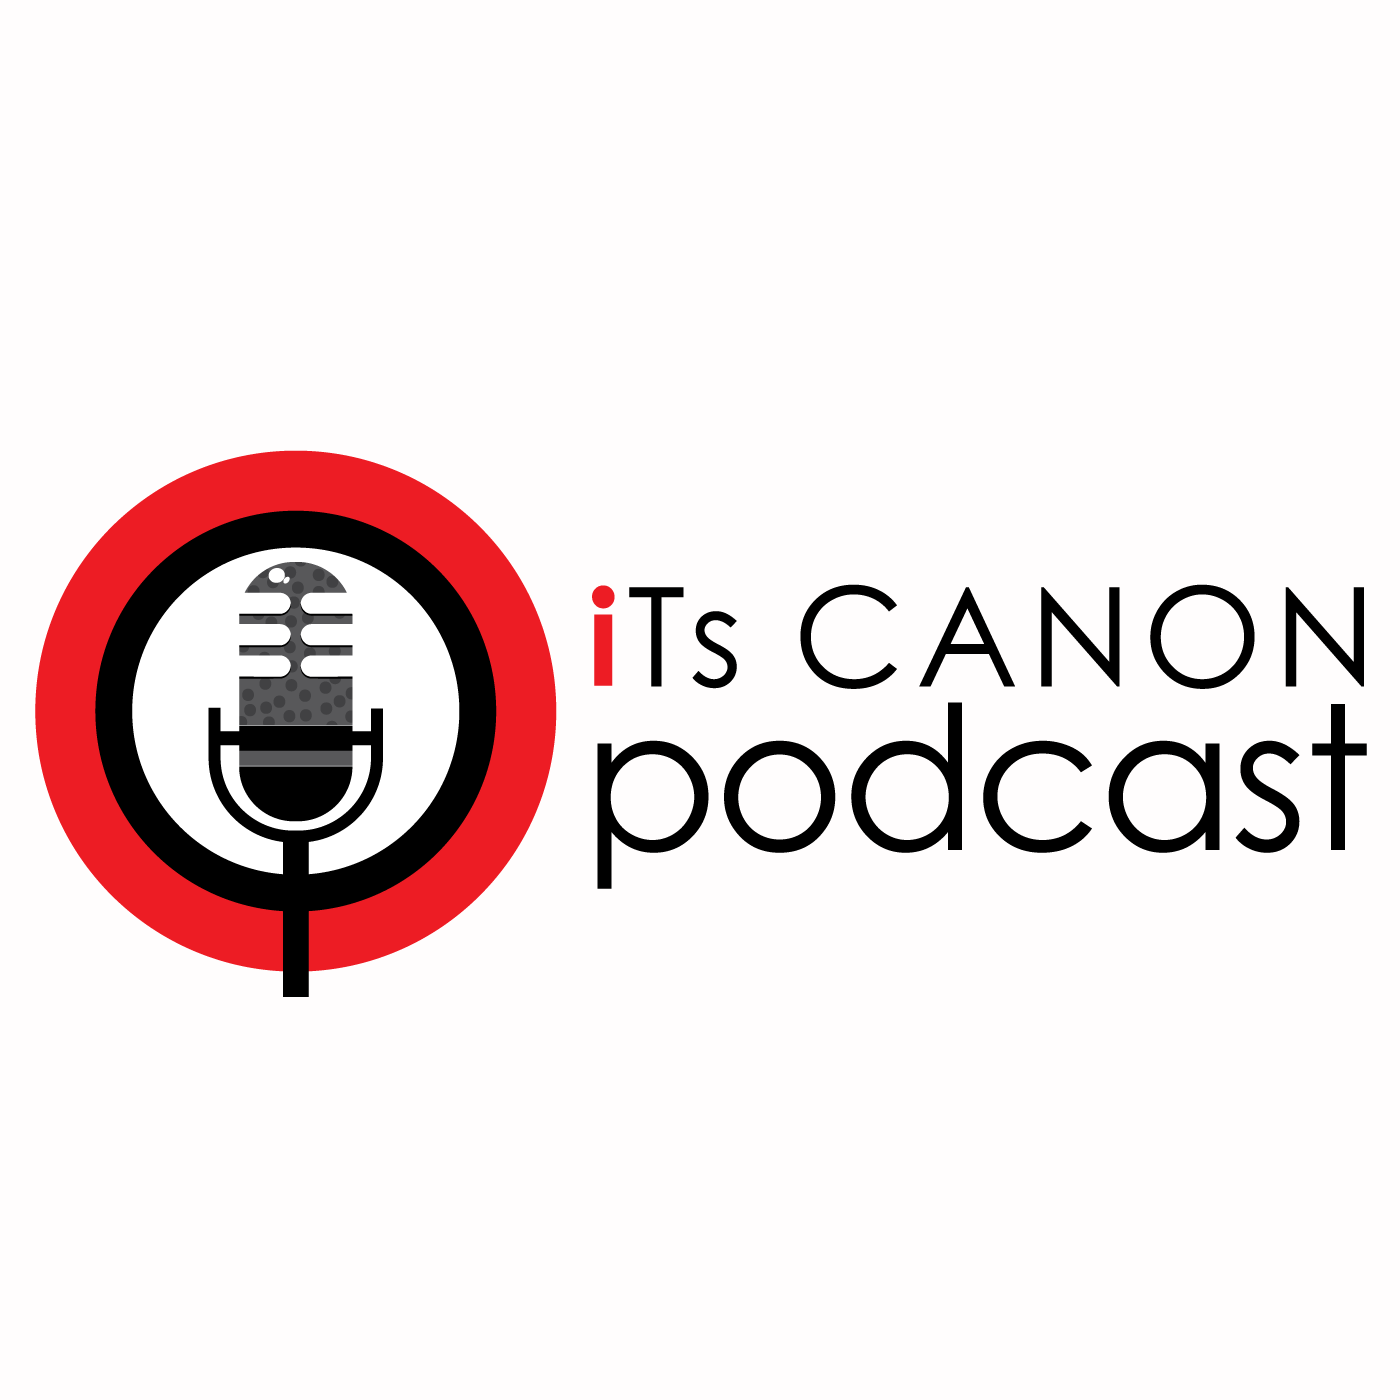 Its Canon Podcast